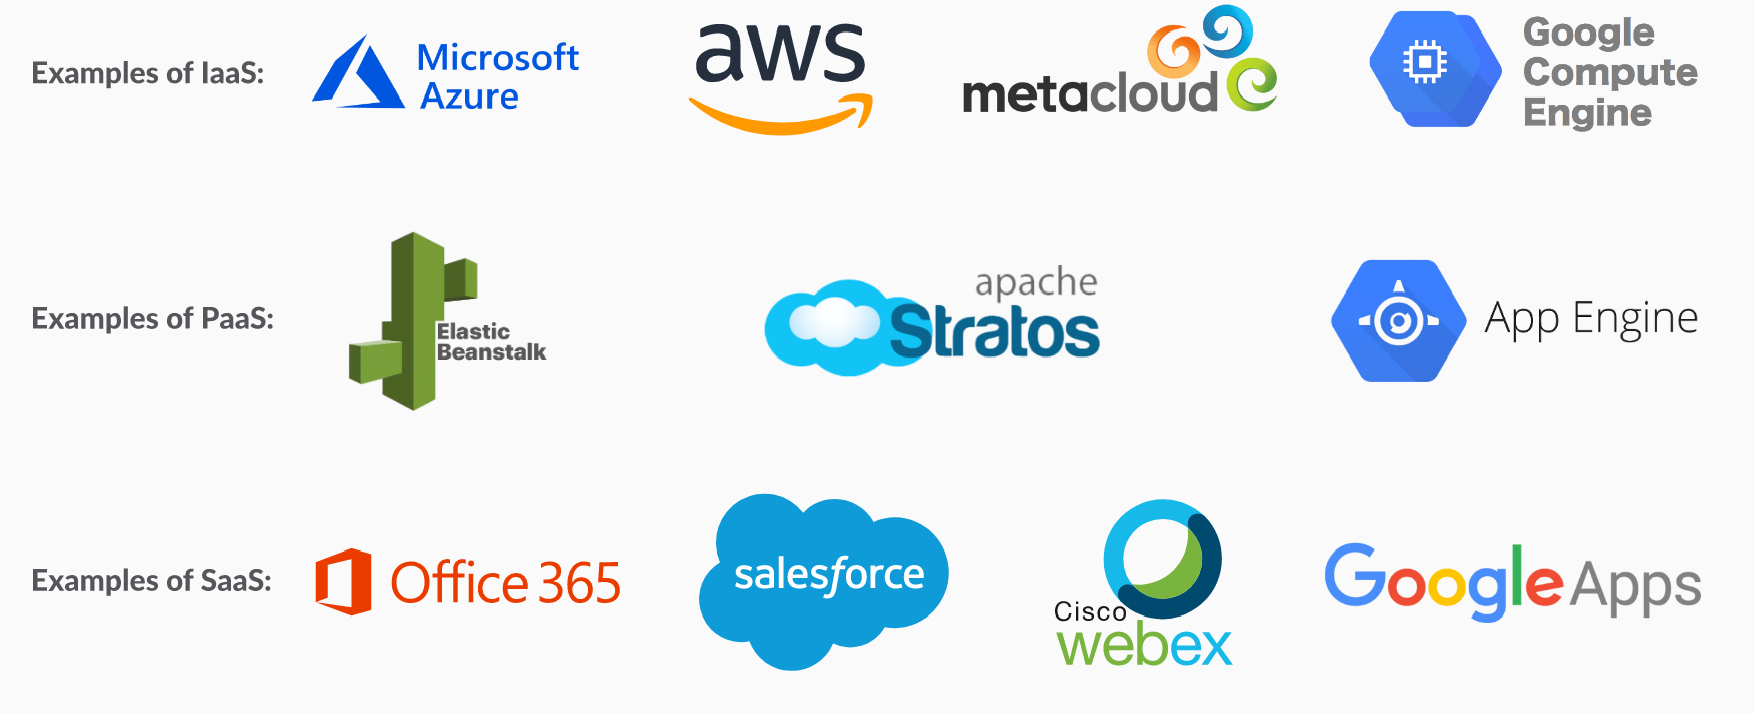 offshore software development cloud computing: examples of Iaas, SaaS, and PaaS. How to benefit from offshore cloud services